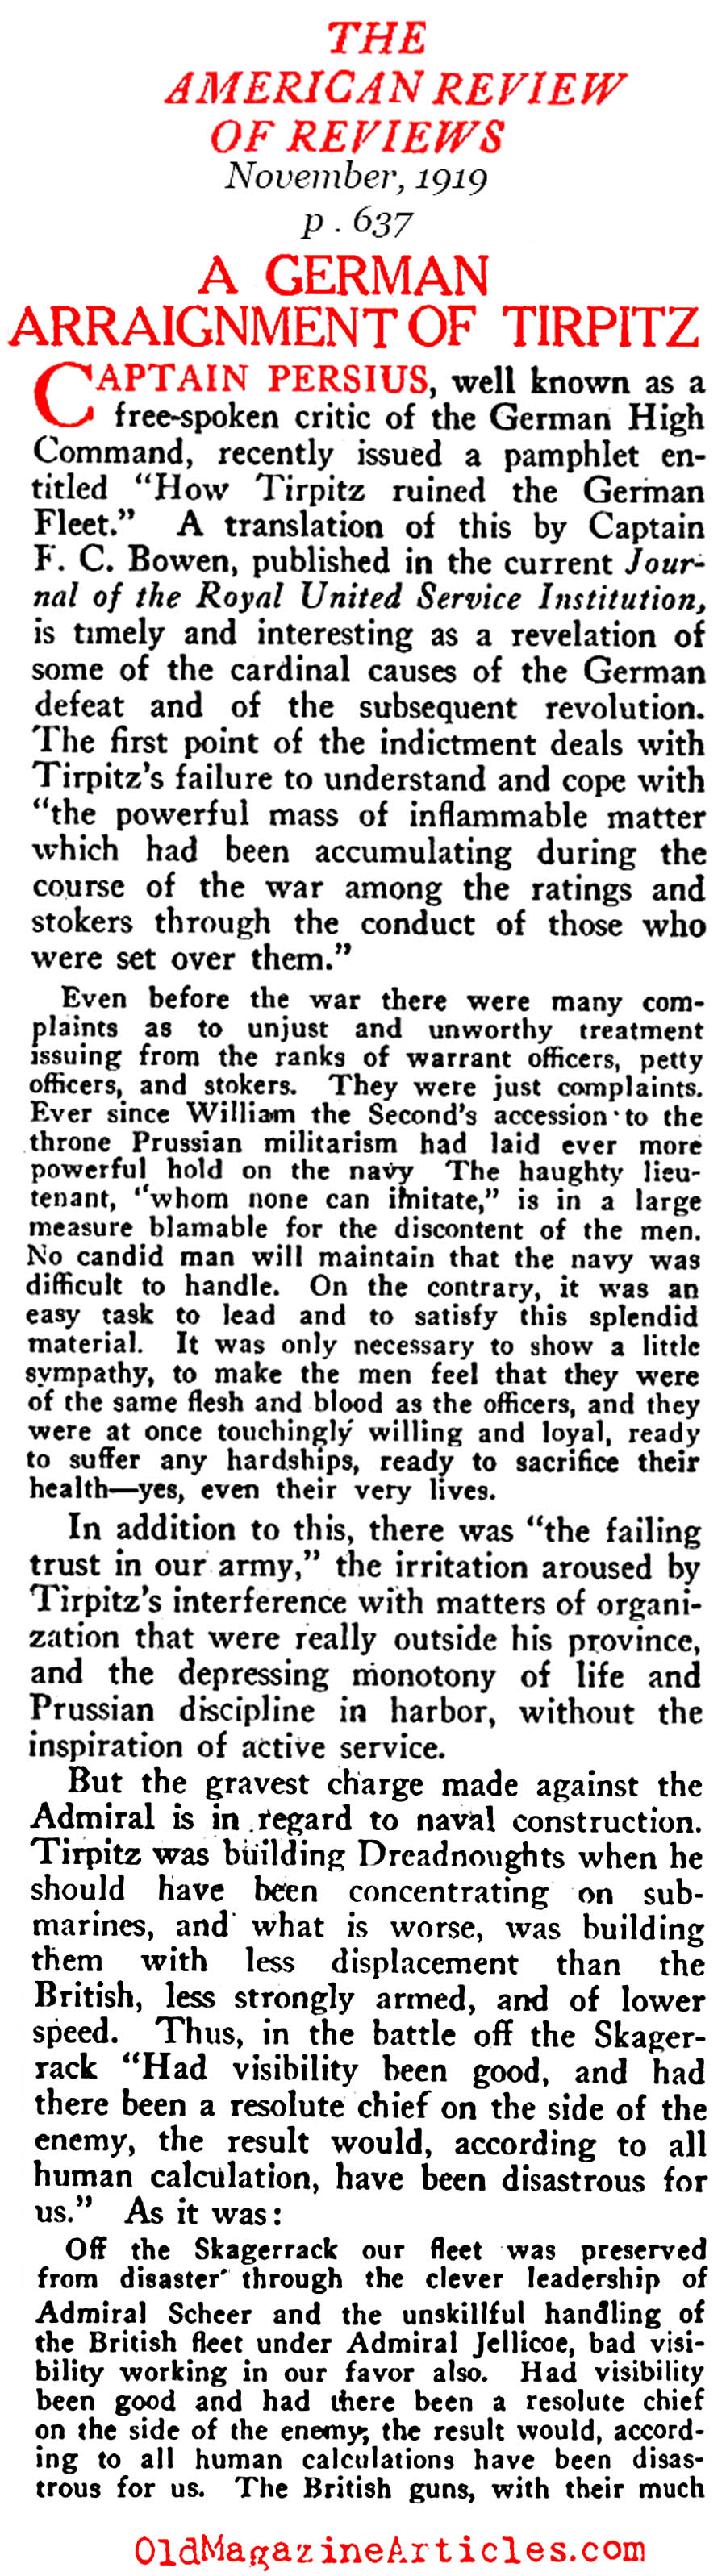 German Admiral Von Tirpitz Condemned (Review of Reviews, 1919)